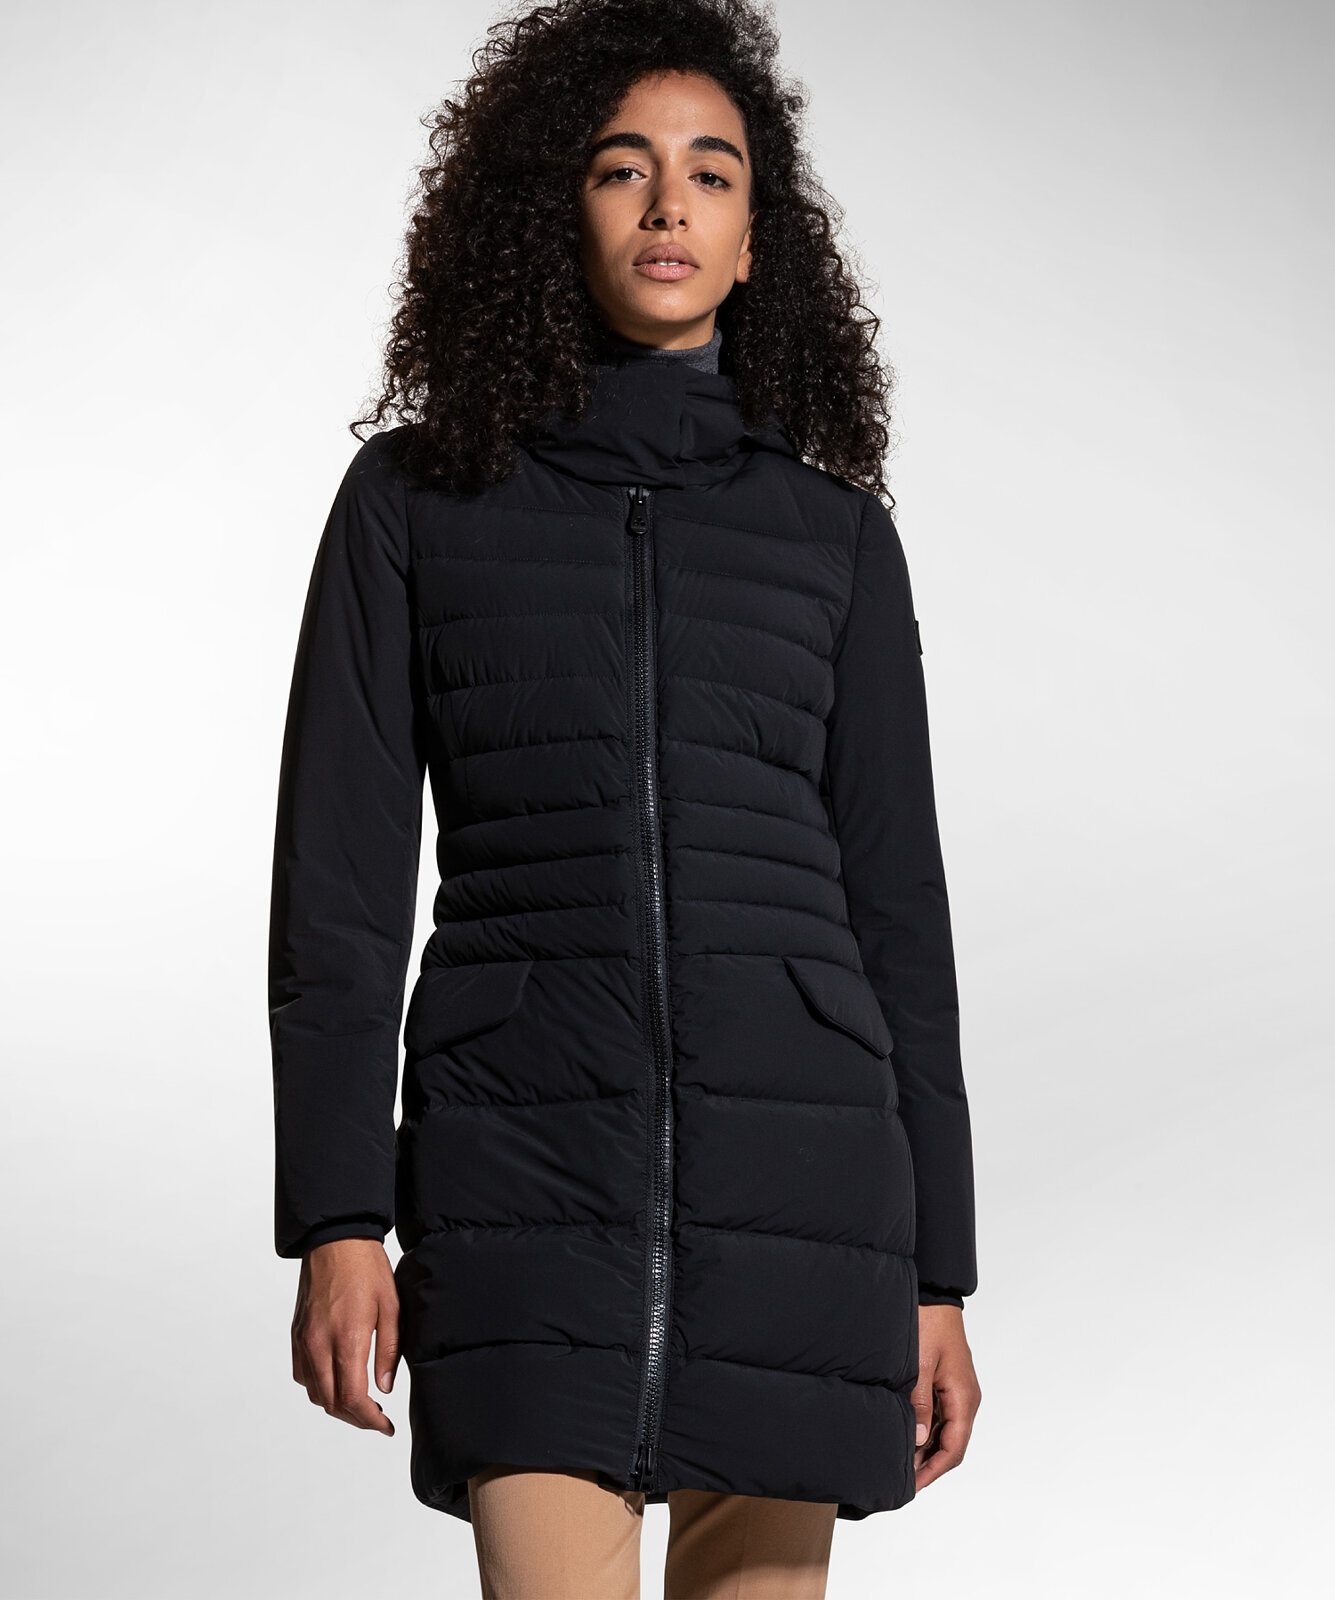 Long Bi-Stretch and Down Proof Down Jacket - Peuterey